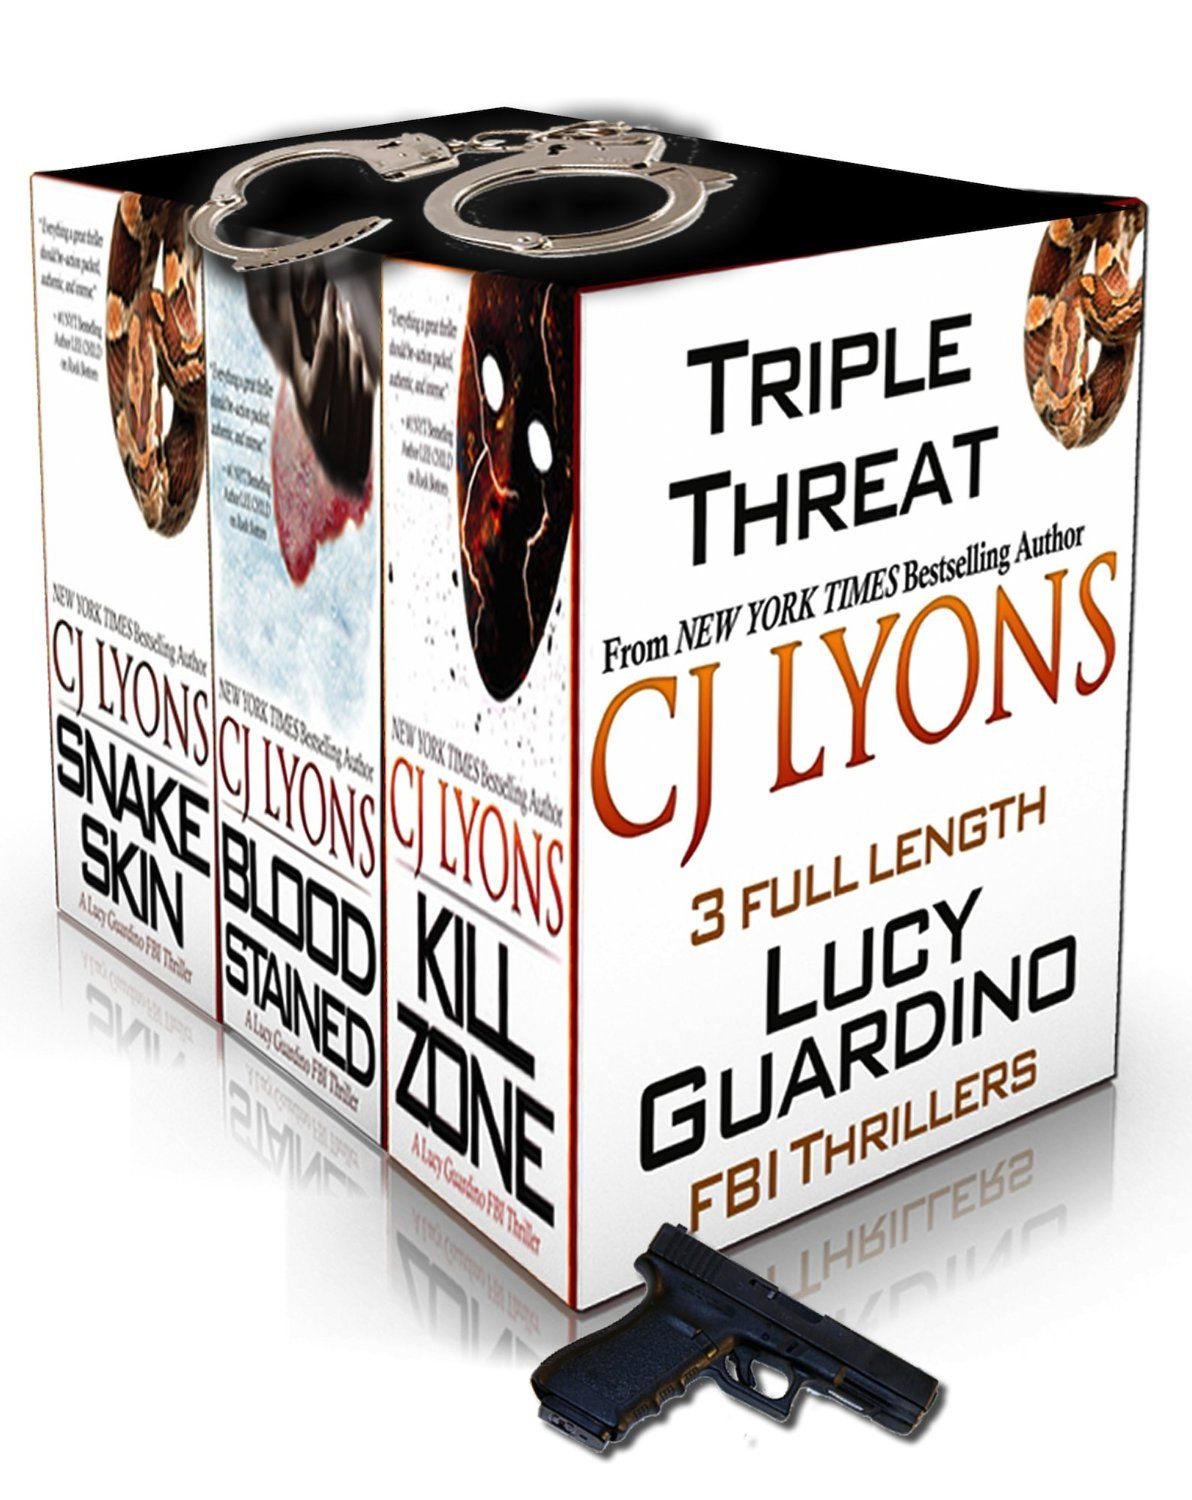 TRIPLE THREAT: A Lucy Guardino FBI Thriller Special Priced Box Set (3 Complete Lucy Guardino FBI Thrillers) - Kindle edition by CJ Lyons. My...